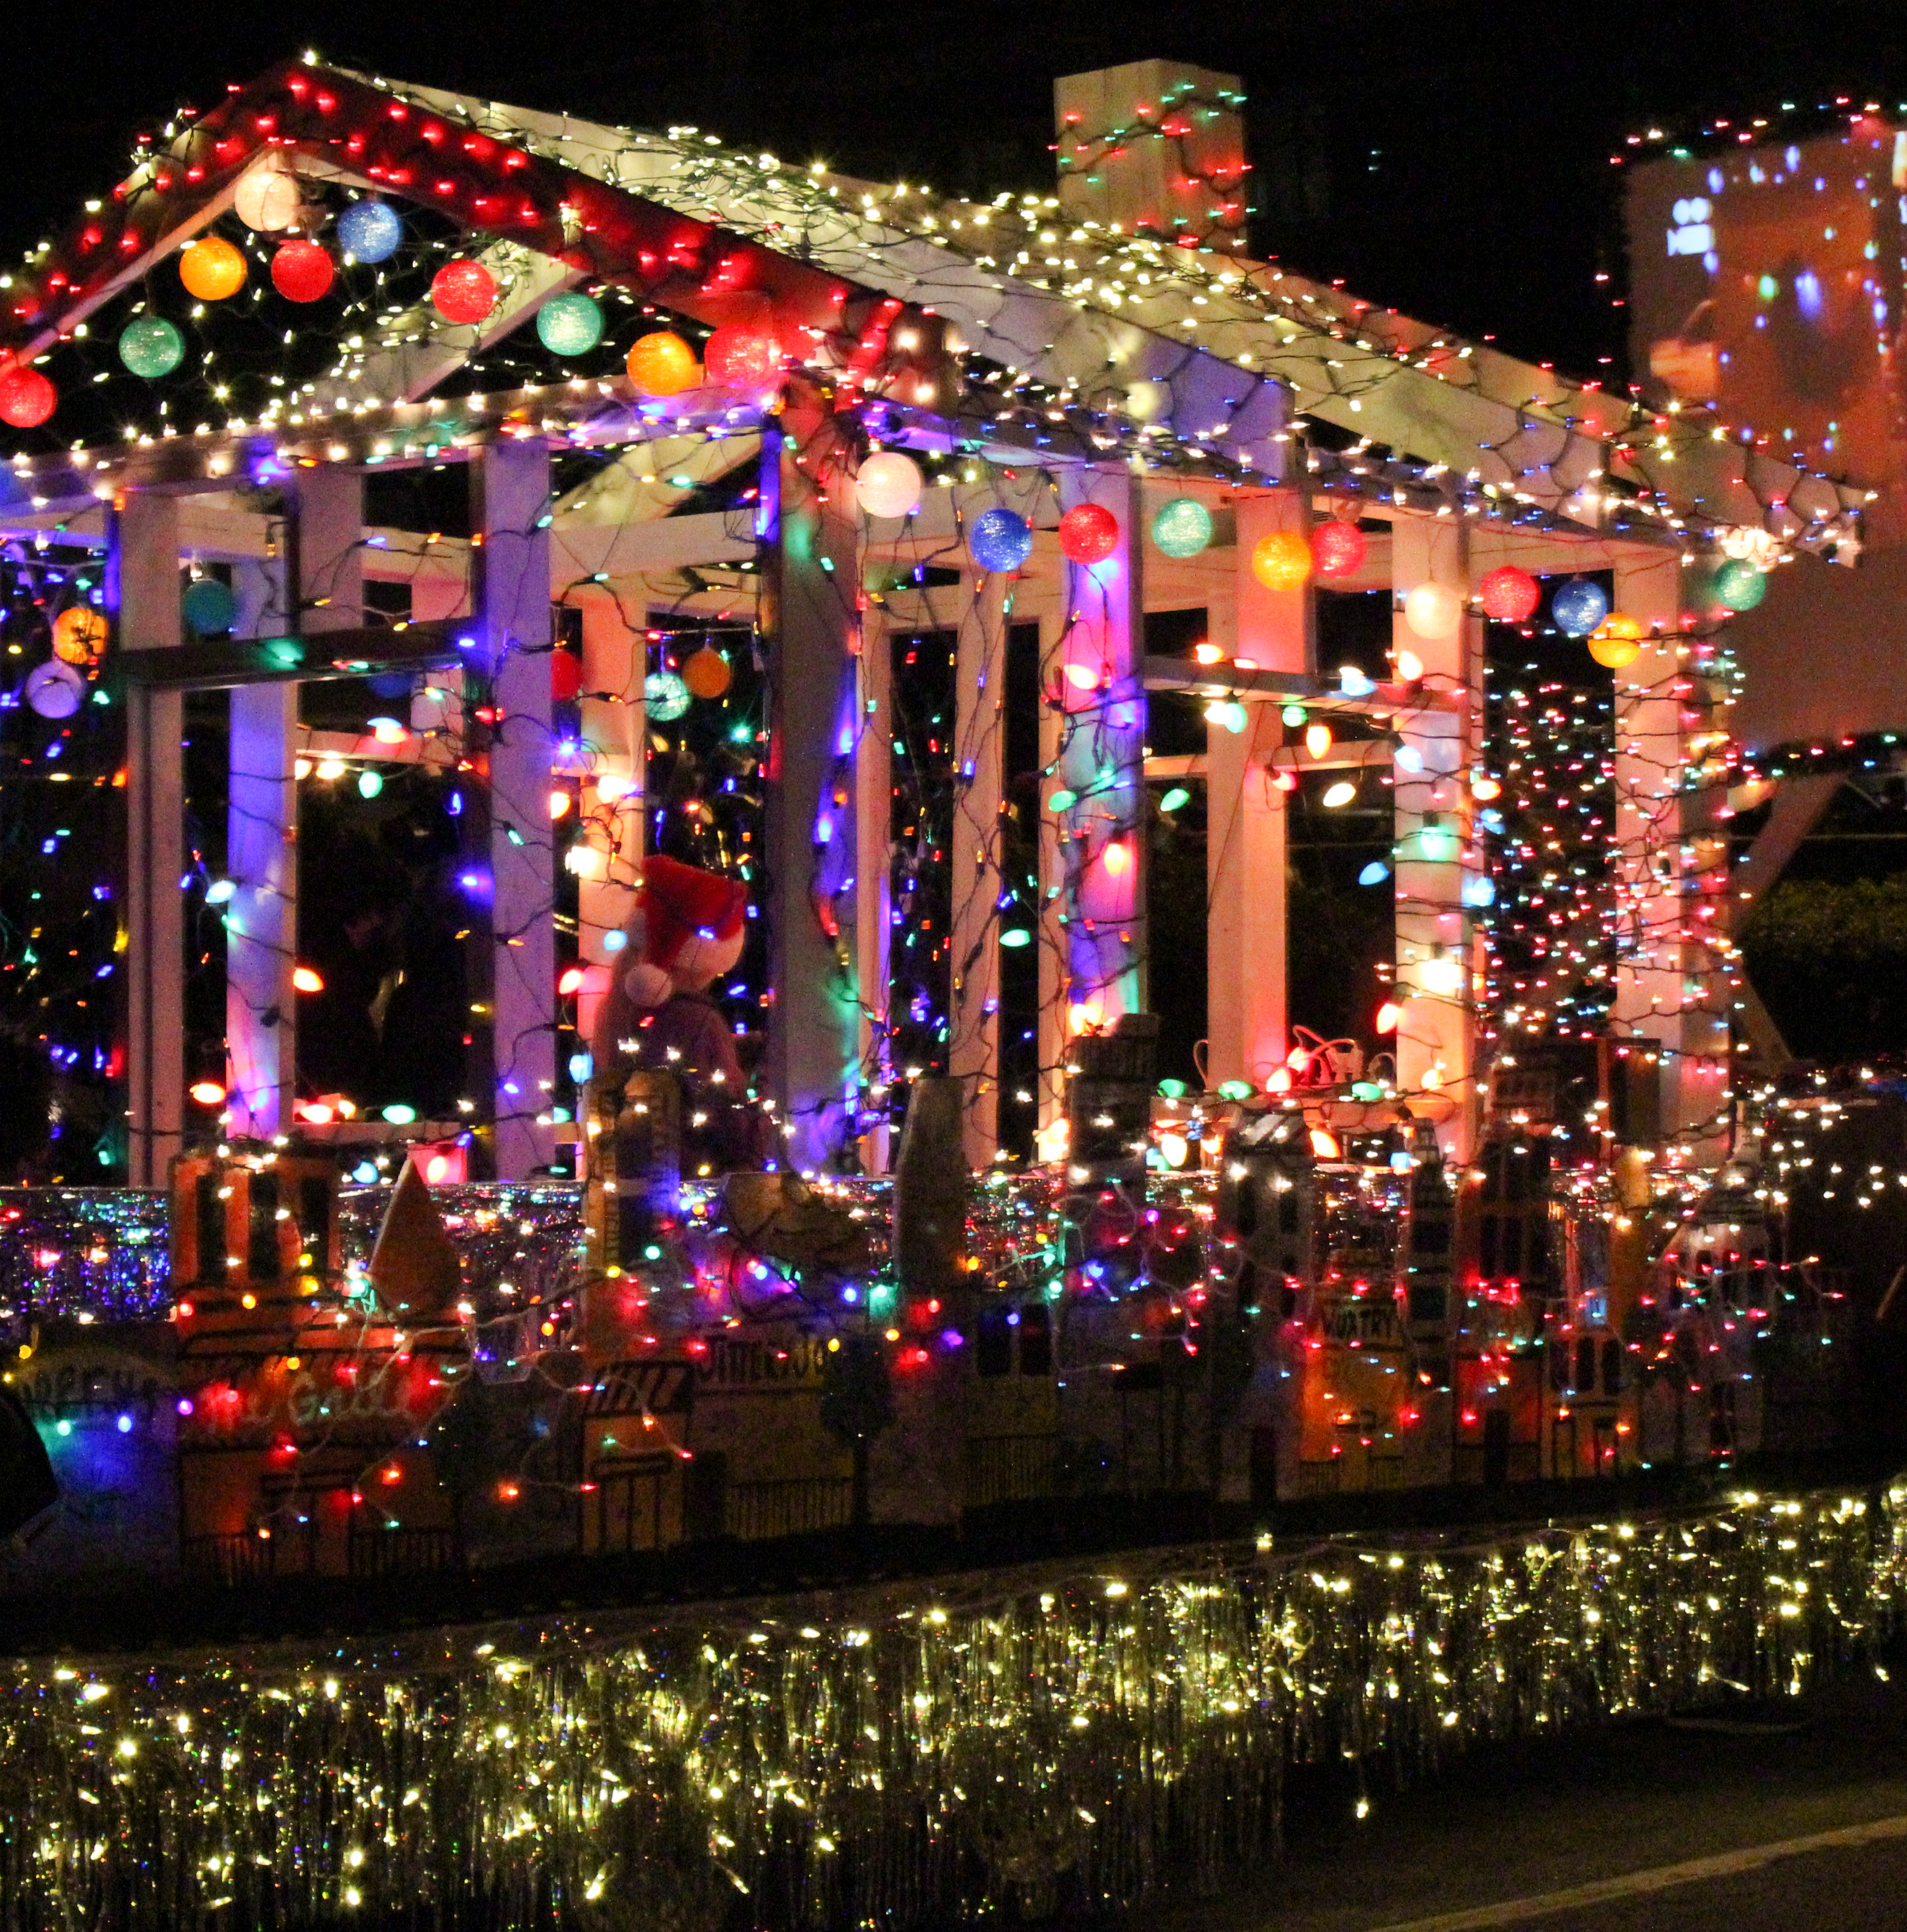 Athens Ga Christmas Parade 2020 Holiday Events and Happenings in Athens, GA 2018